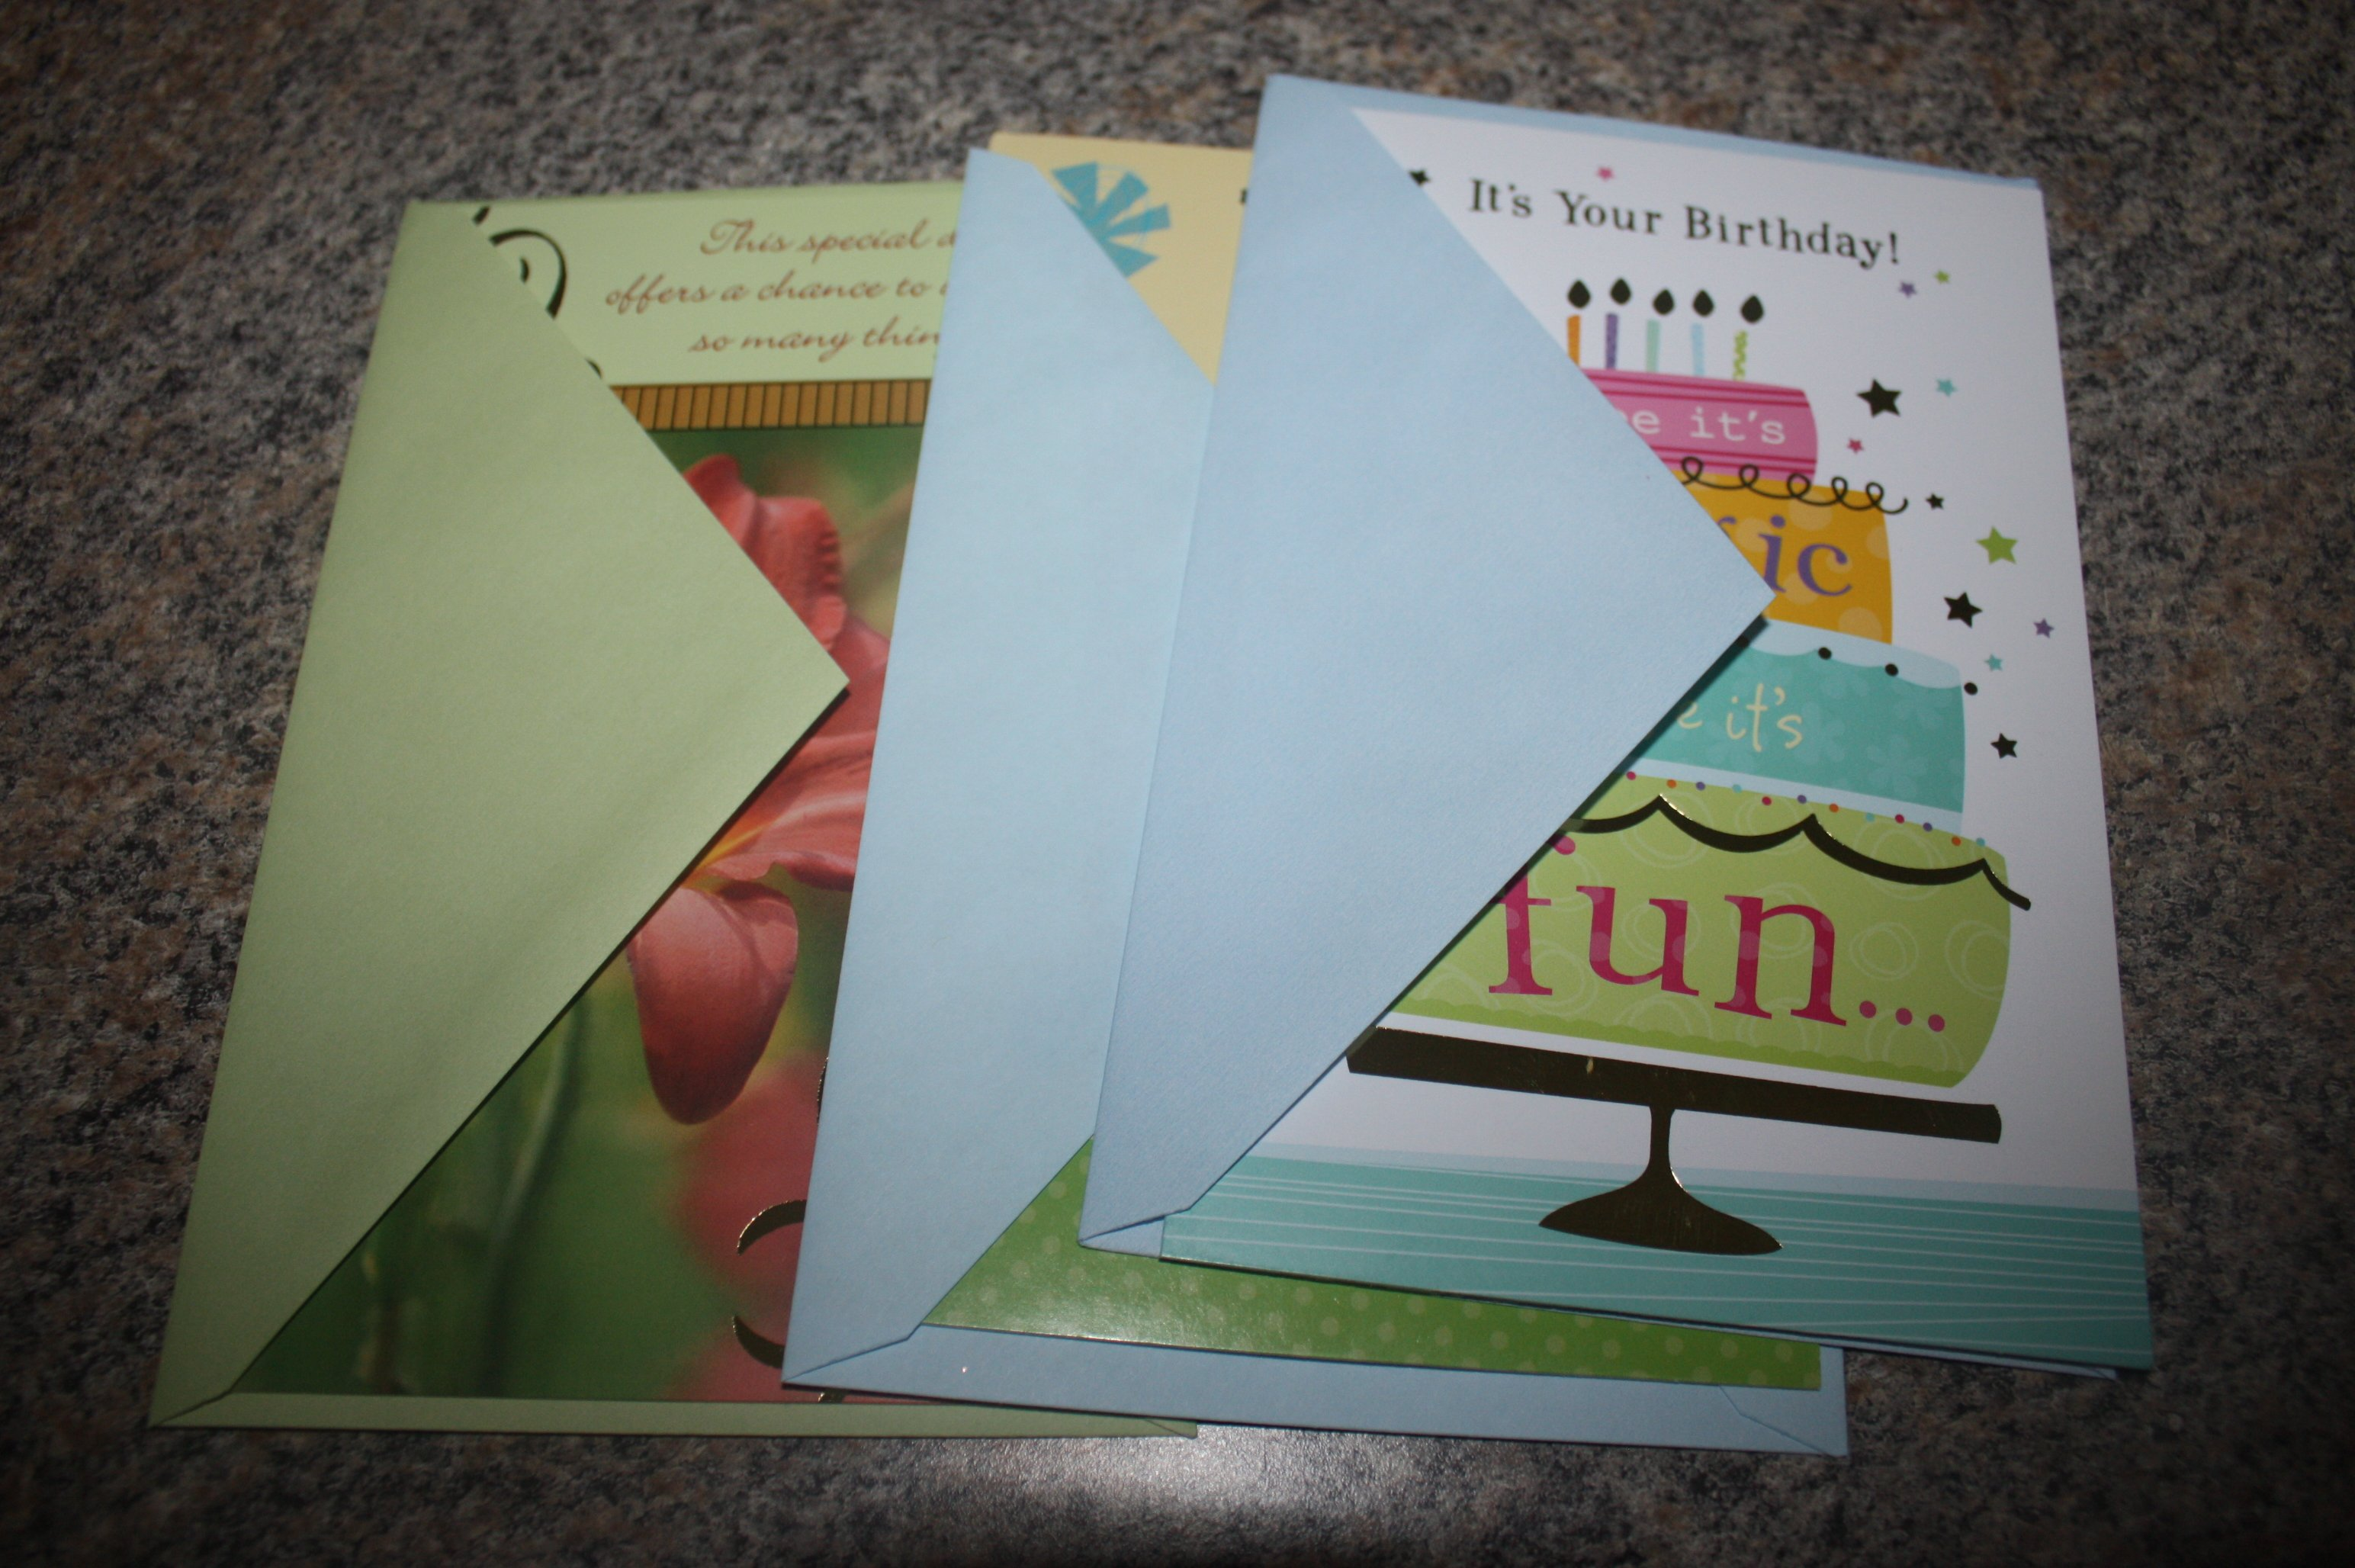 3 free american greeting cards cvs midgetmomma i scored this deal this week at cvs buy 3 american greetings cards get 3 ecb look for the cards that are 99 and buy 3 pay 297 get 3 ecb making them m4hsunfo